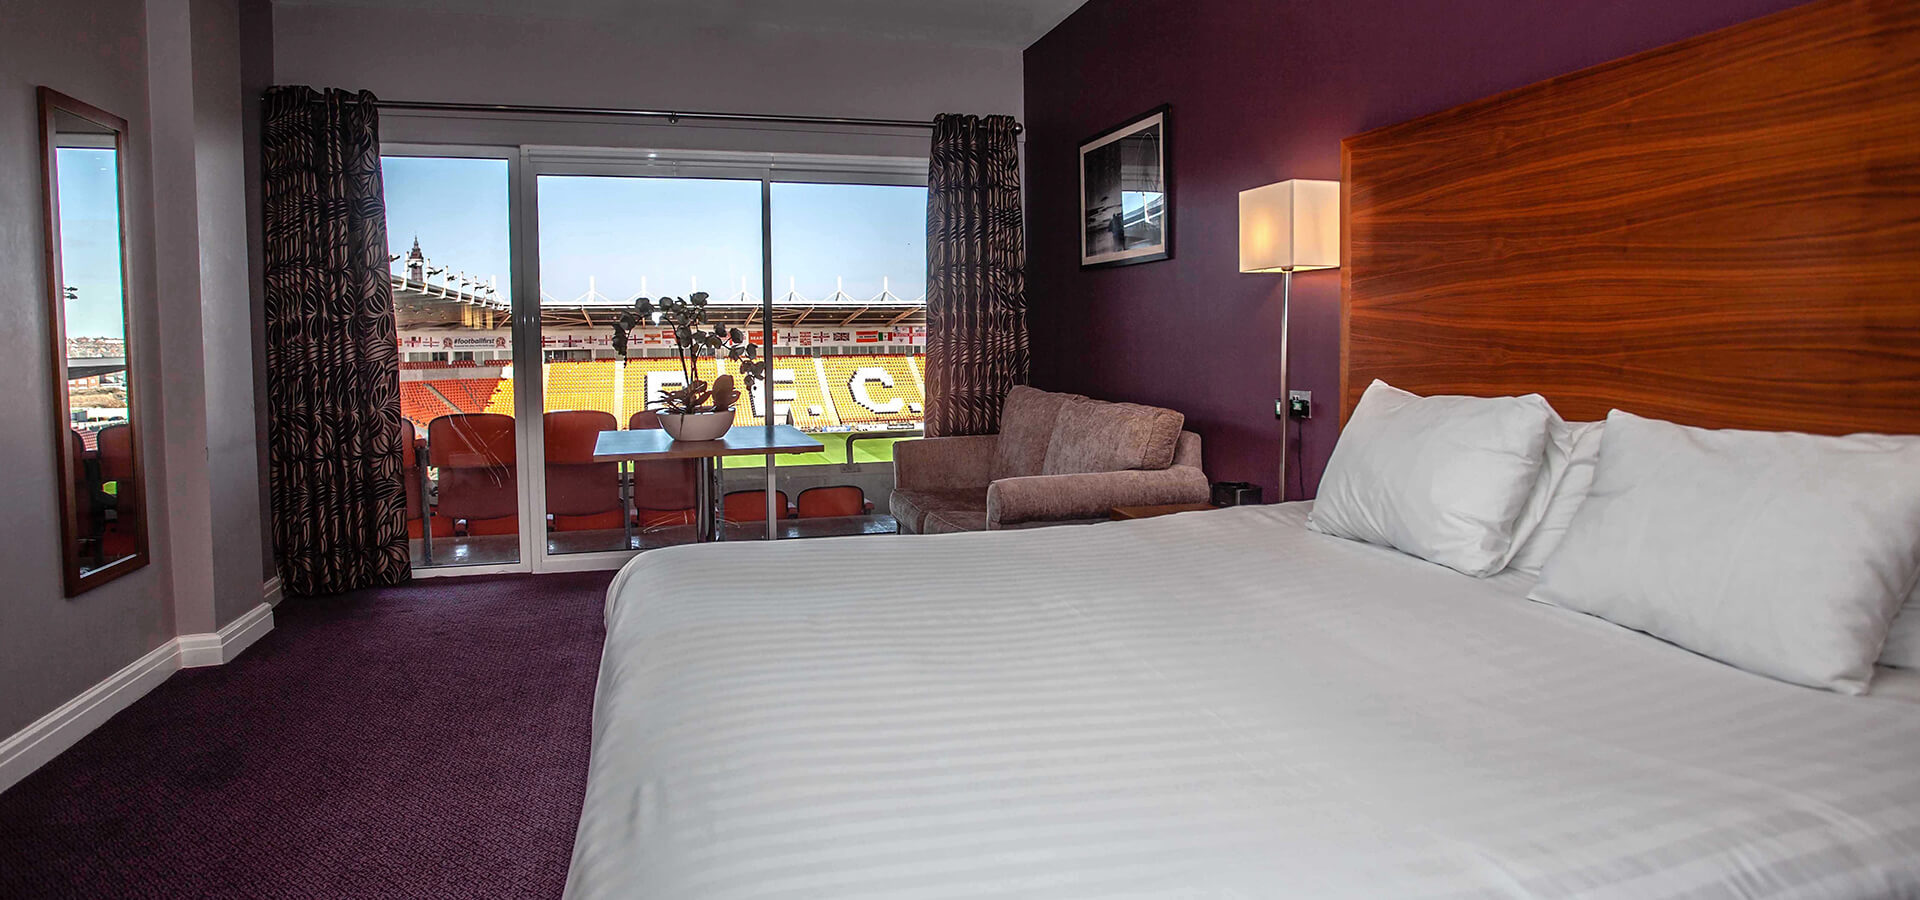 We offer a range of superior accommodation